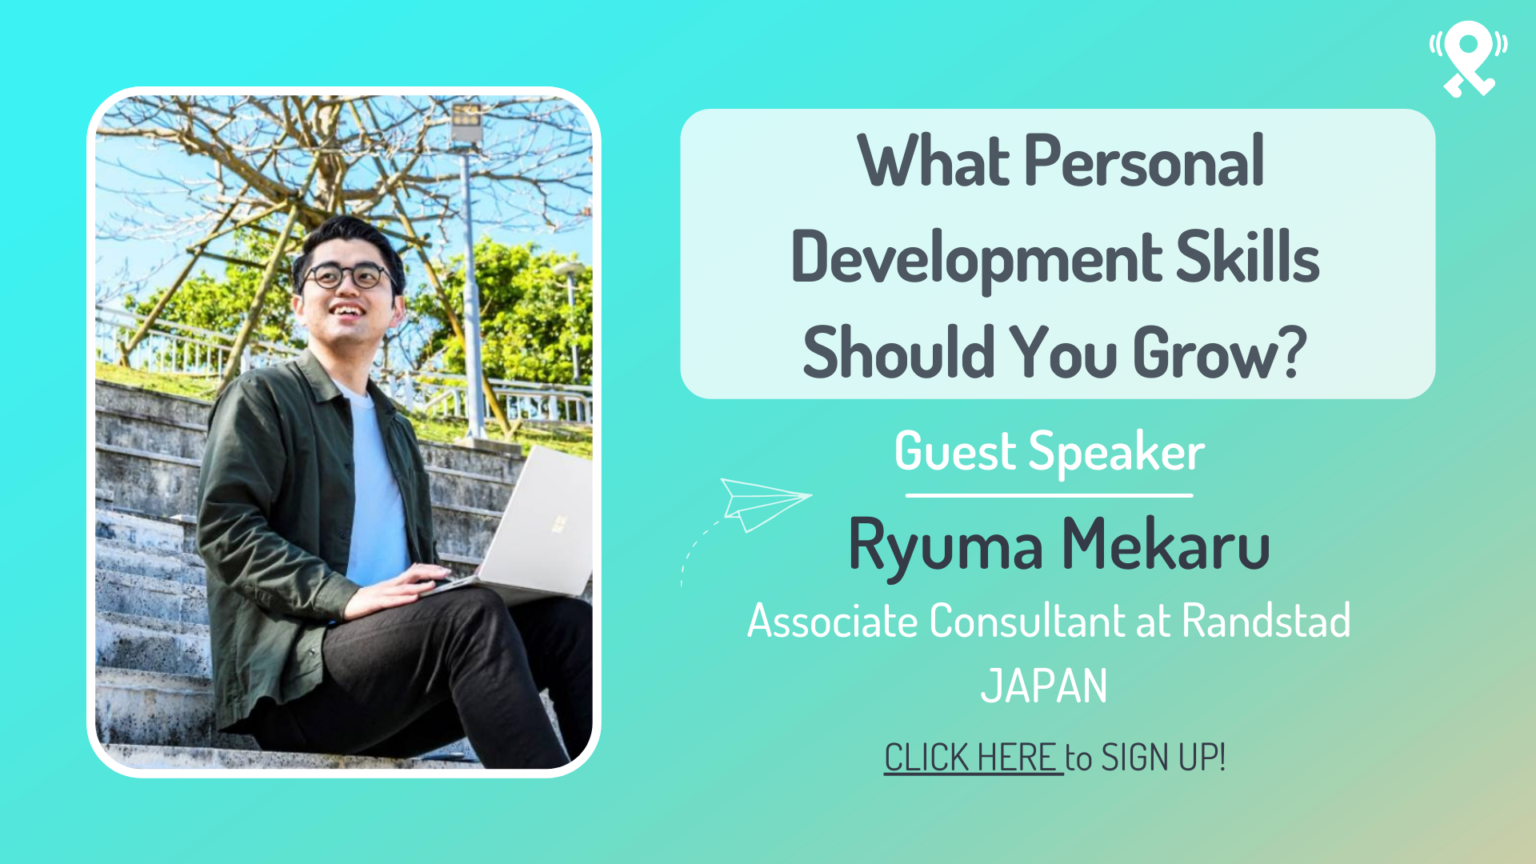 What Personal Development Skills Should You Grow